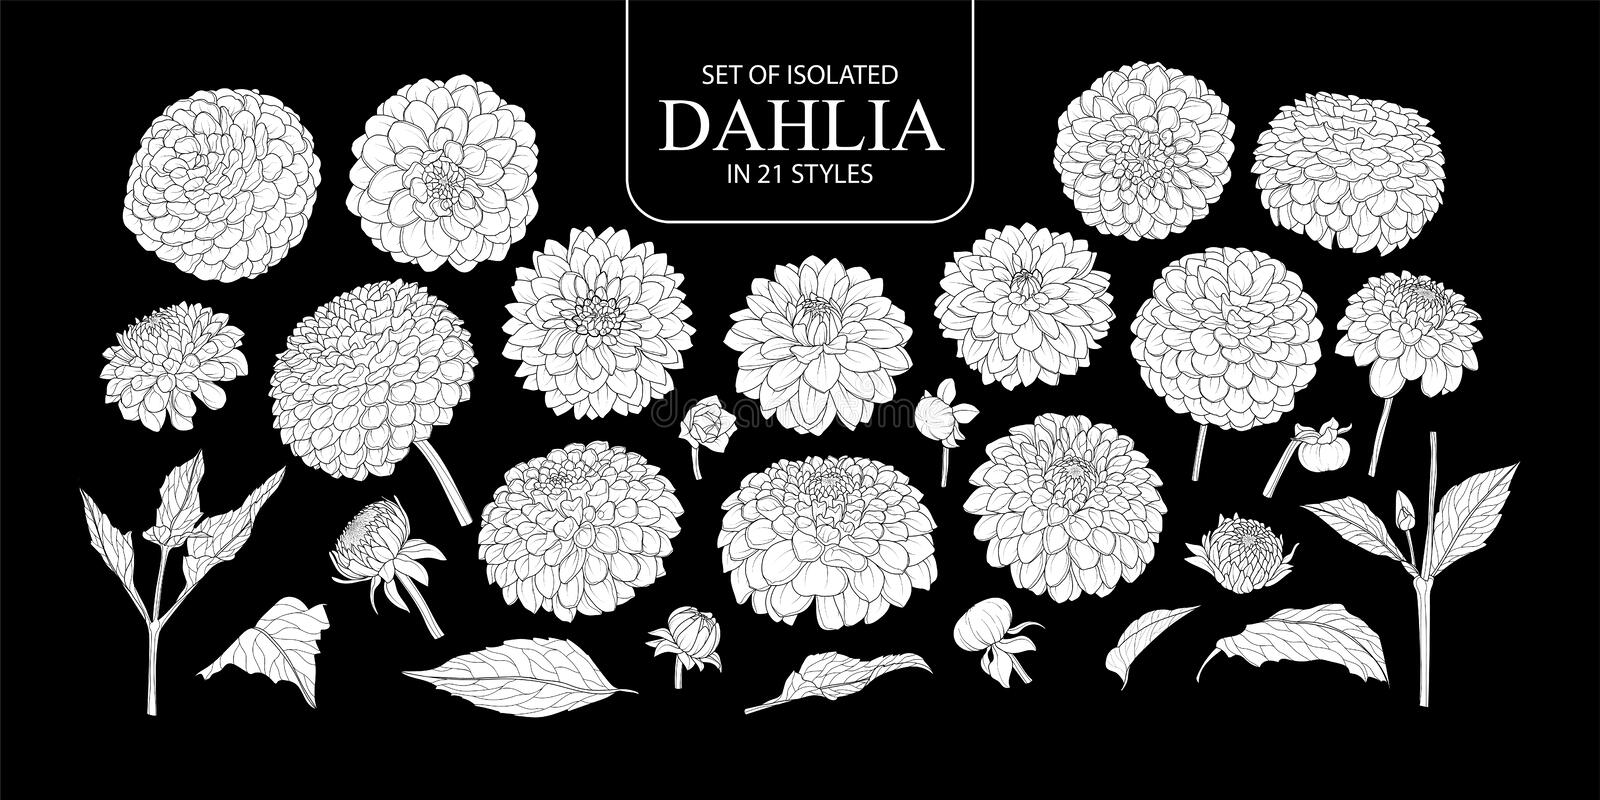 Set of isolated white silhouette Dahlia in 21 styles. Cute hand drawn flower vector illustration in white plane without outline on black background royalty free illustration